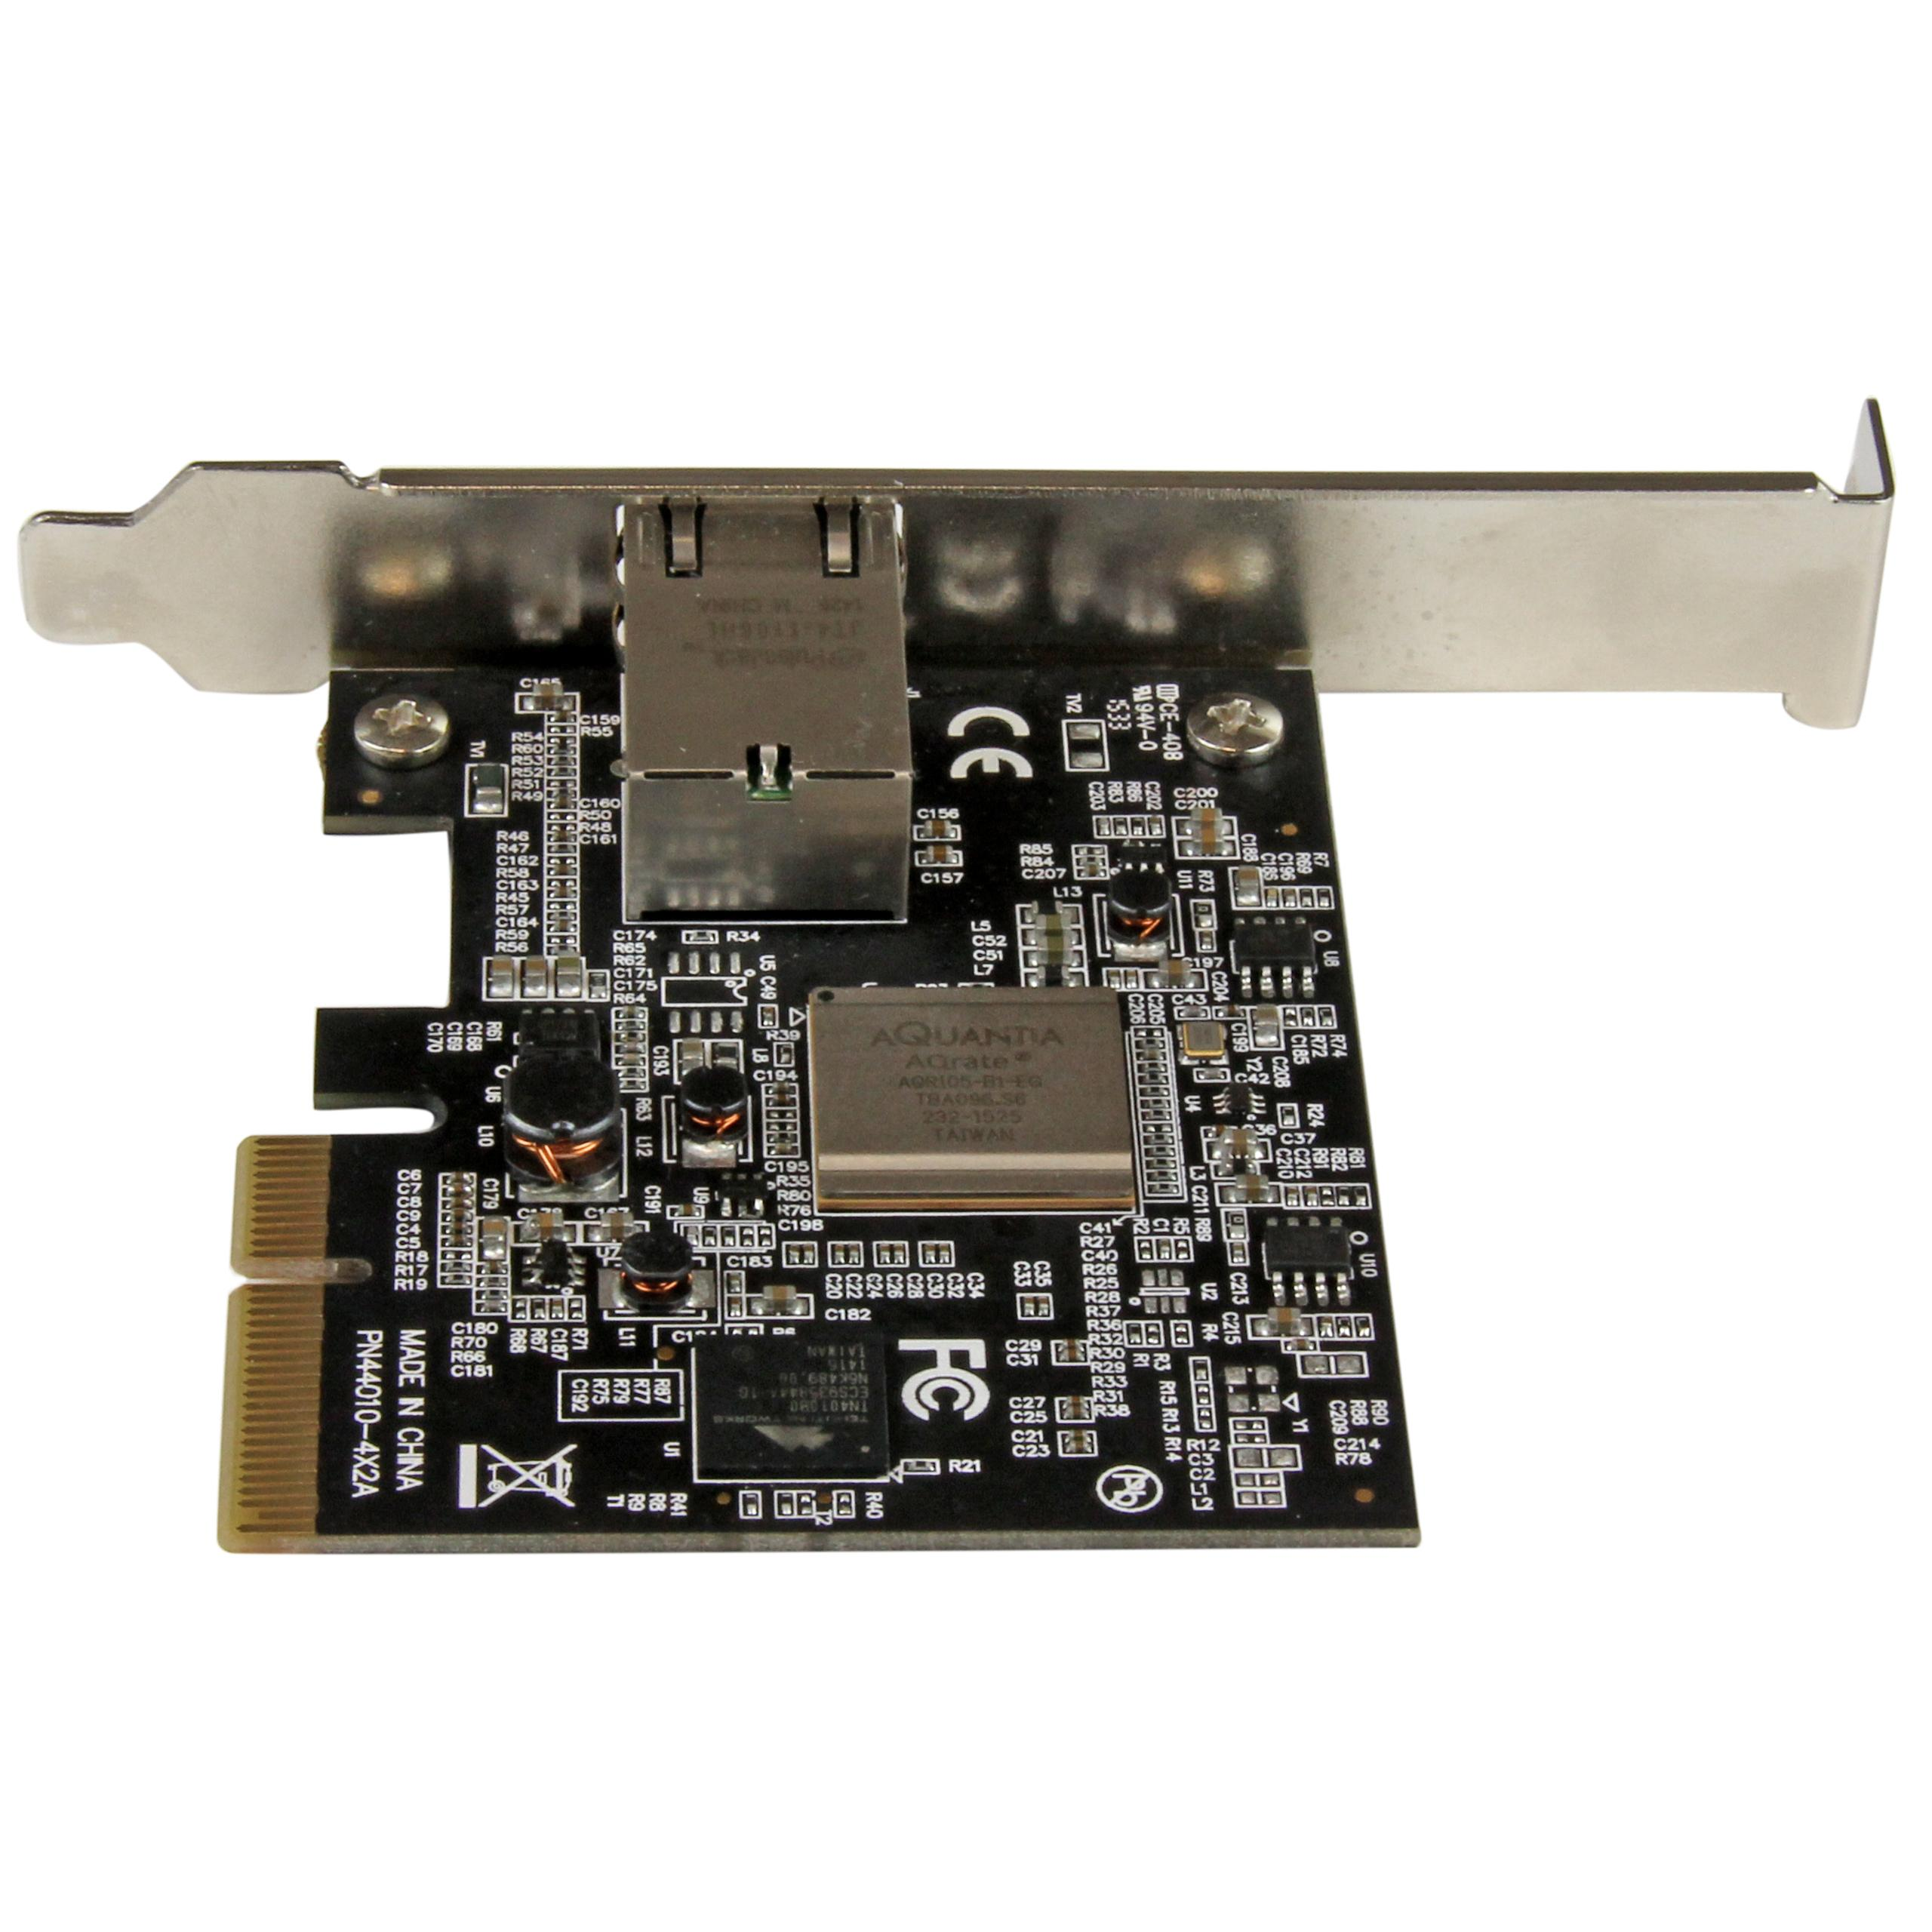 1 Port PCI Express 10GBase-T/NBASE-T Ethernet Network Card - 5-Speed Network Support: 10G/5G/2.5G/1G/100Mbps - PCIe 2.0 x4